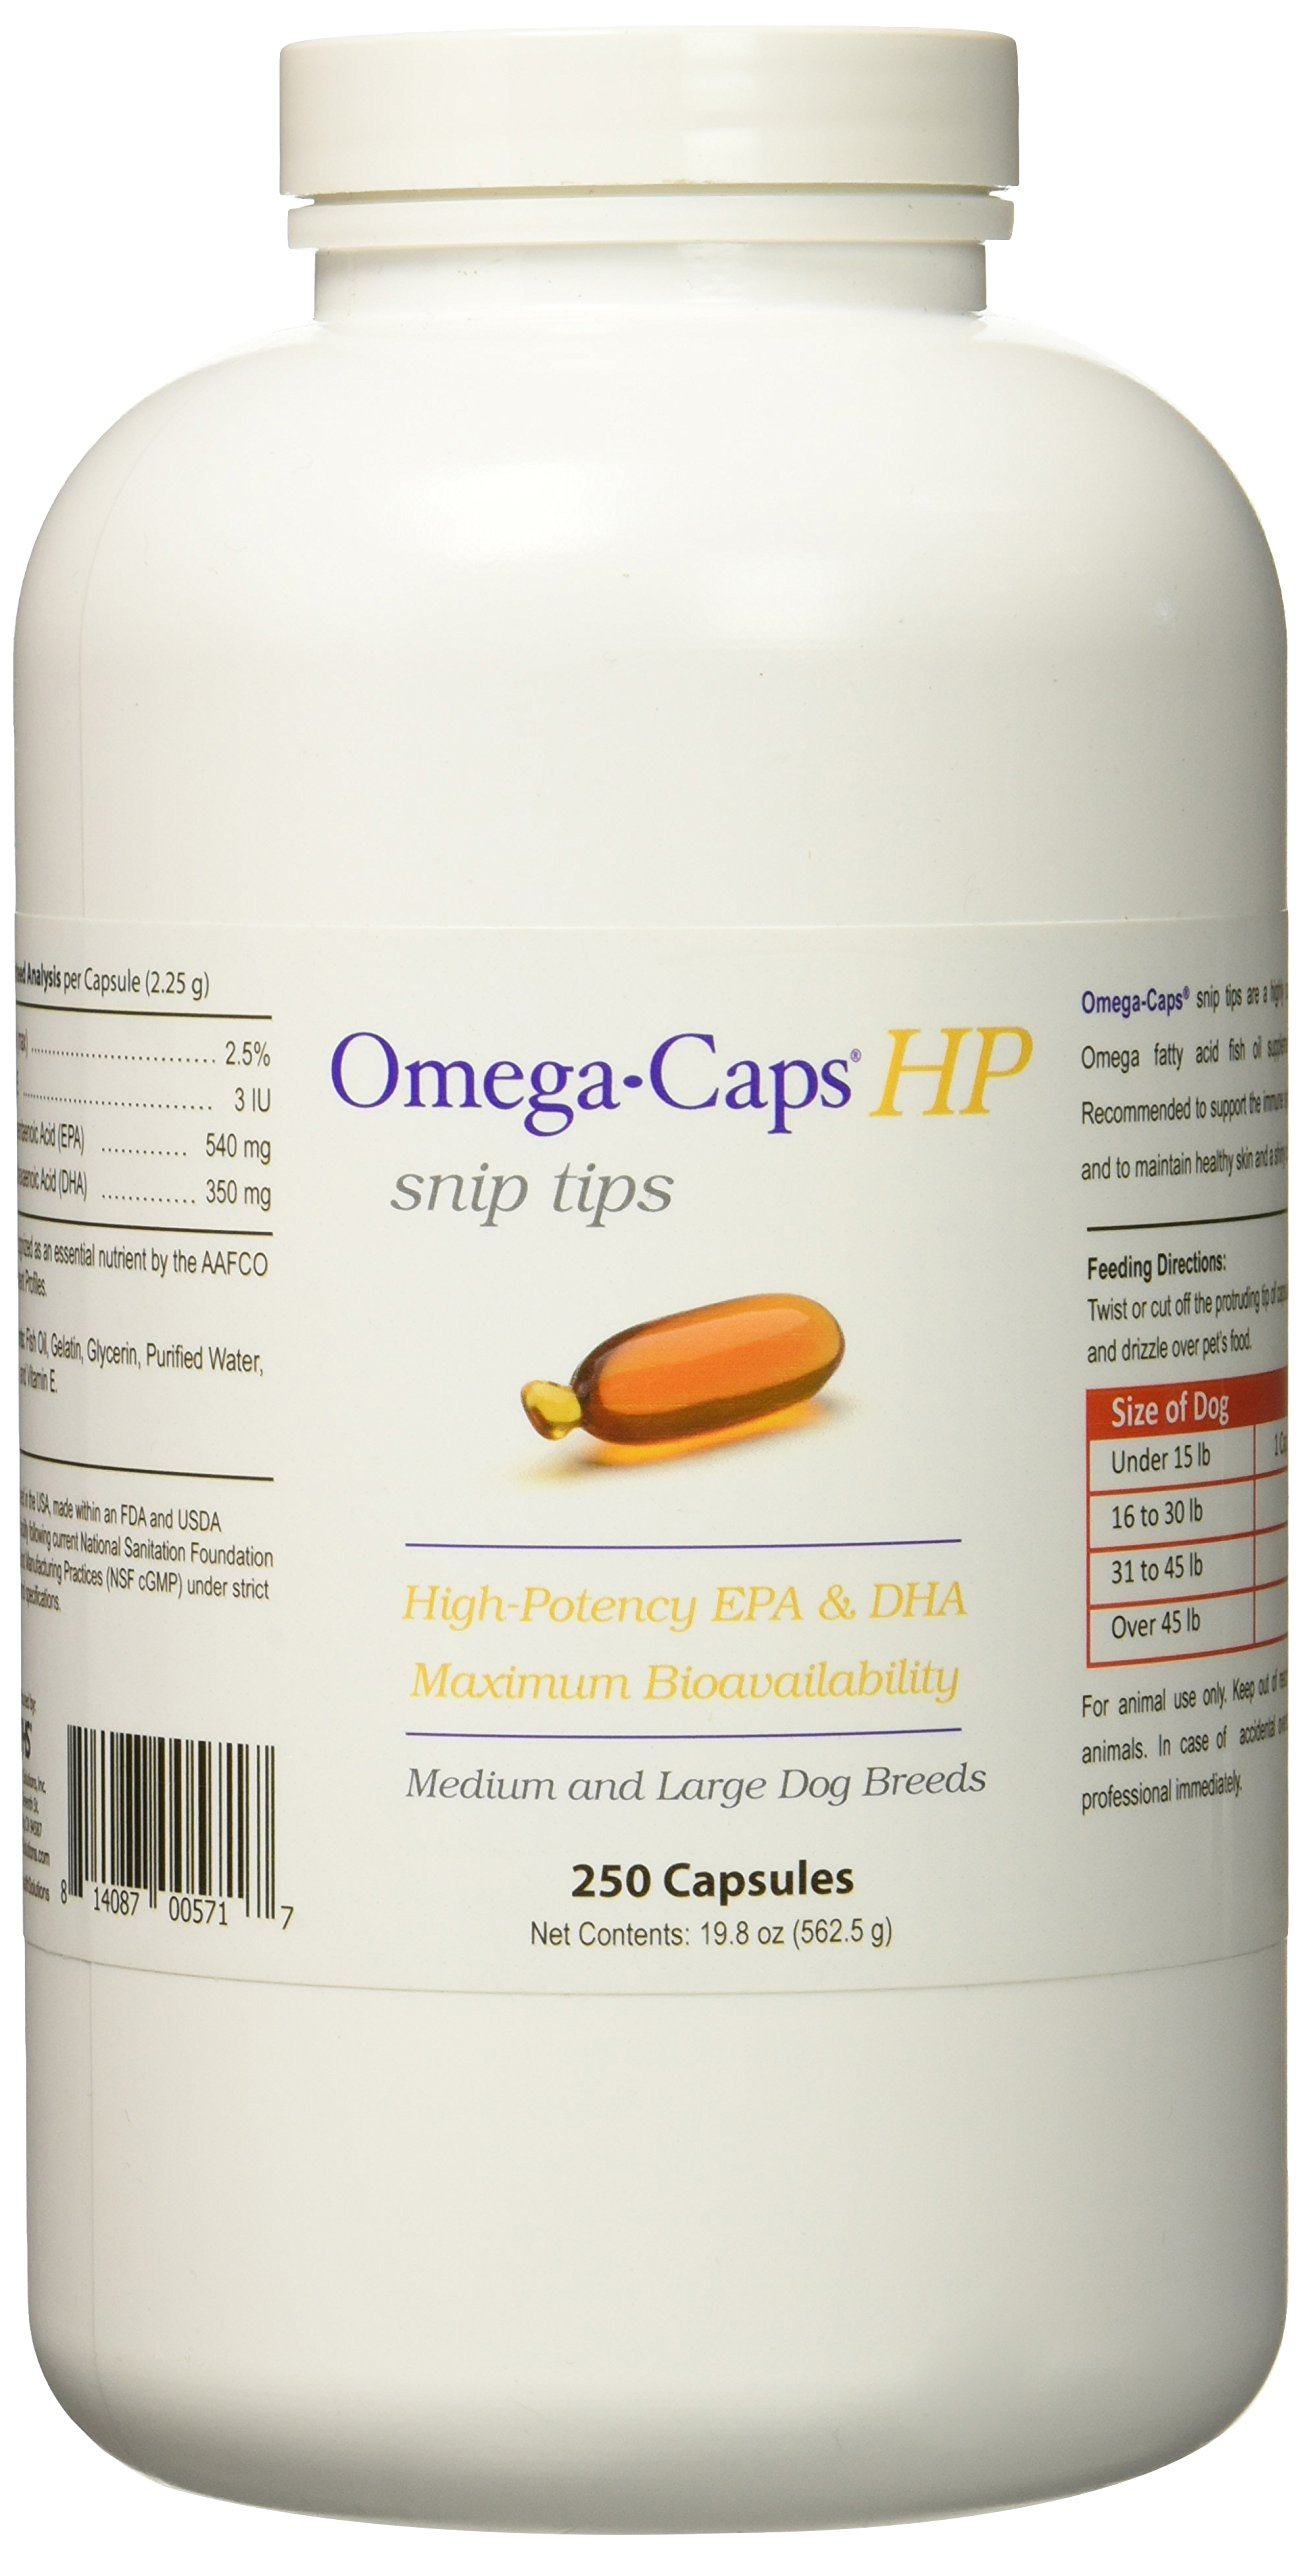 Healthy Pets Omega Caps HP Snip Tips for Medium & Large Dogs (250 Capsules)